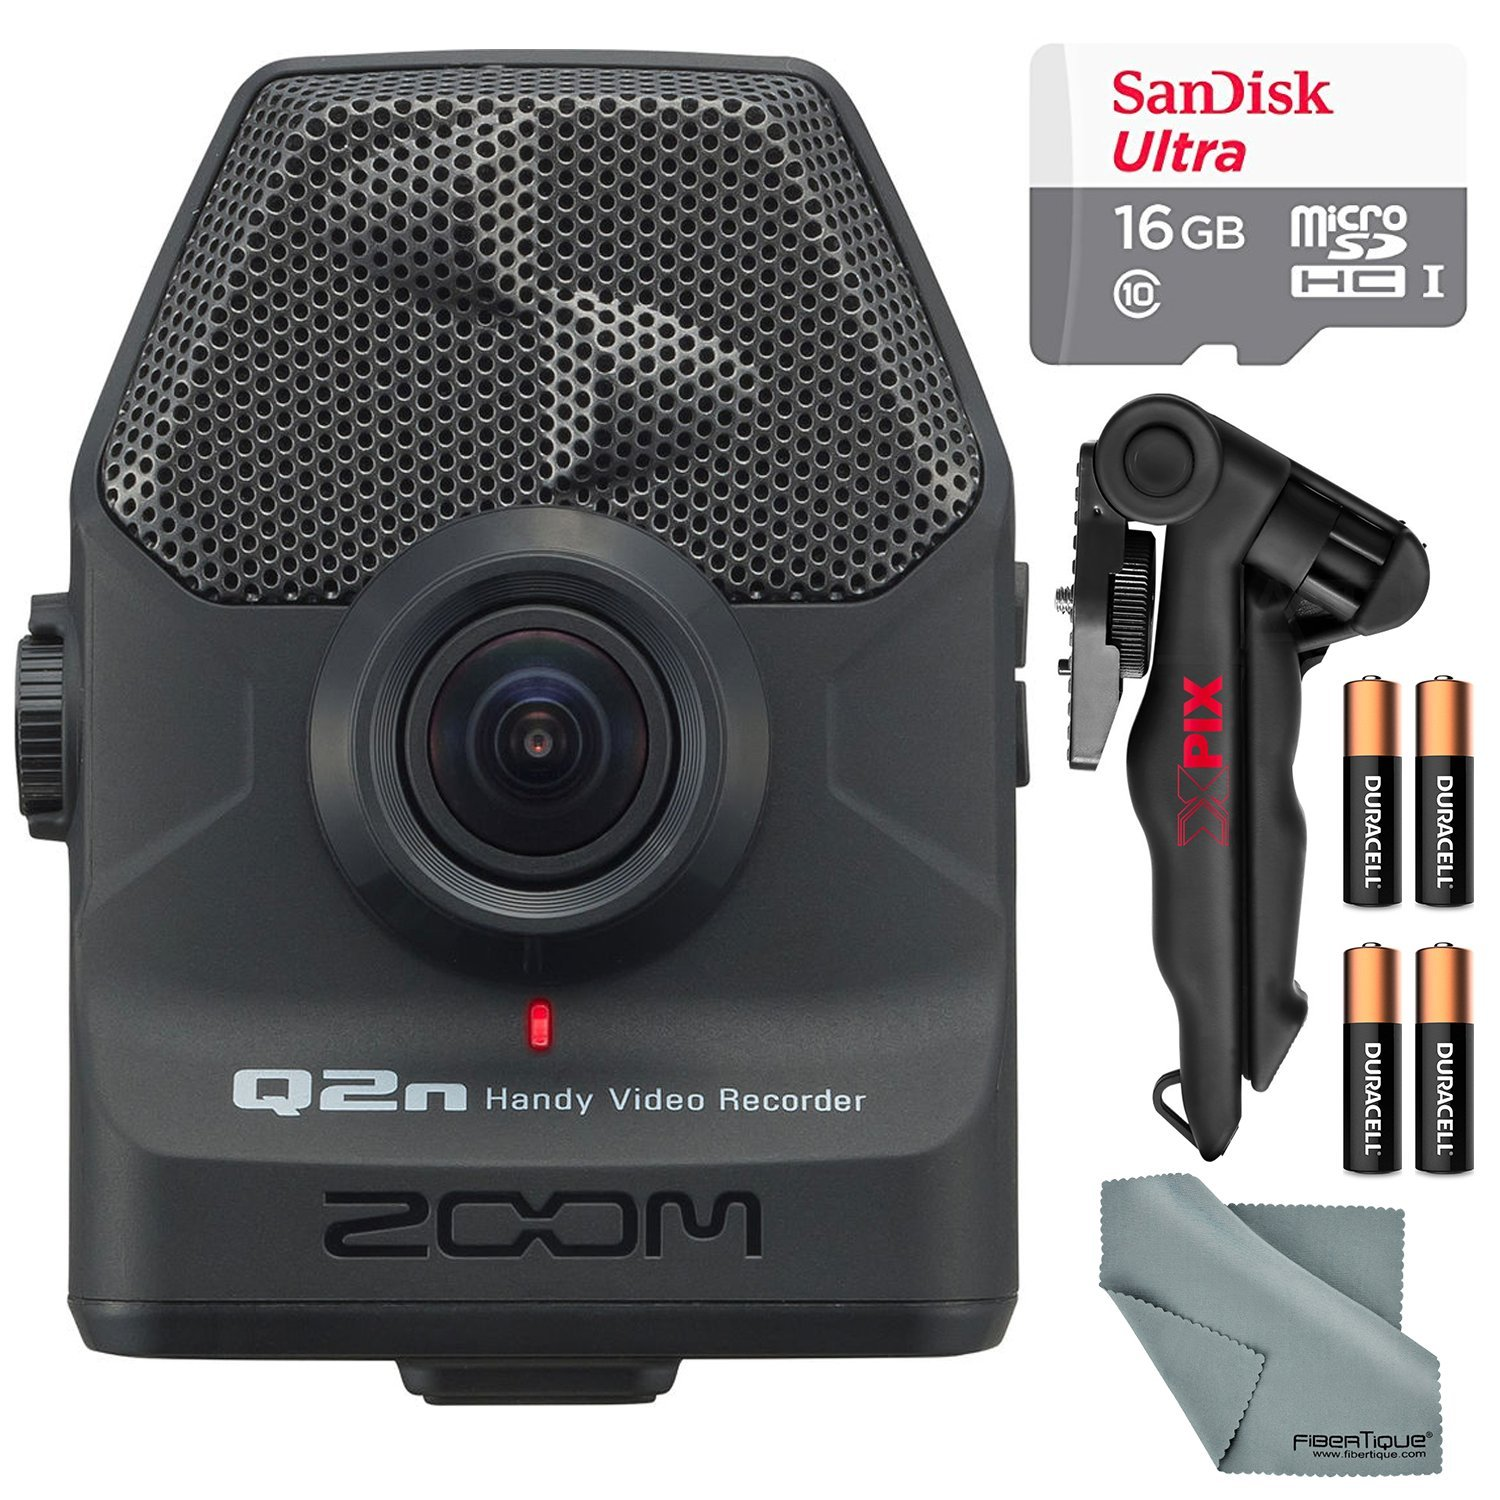 Zoom Q2n Handy Video Recorder Bundle with Tripod + 16 GB SD Card + AA Batteries + Fibertique Cleaning Cloth Photo Savings 4334433839